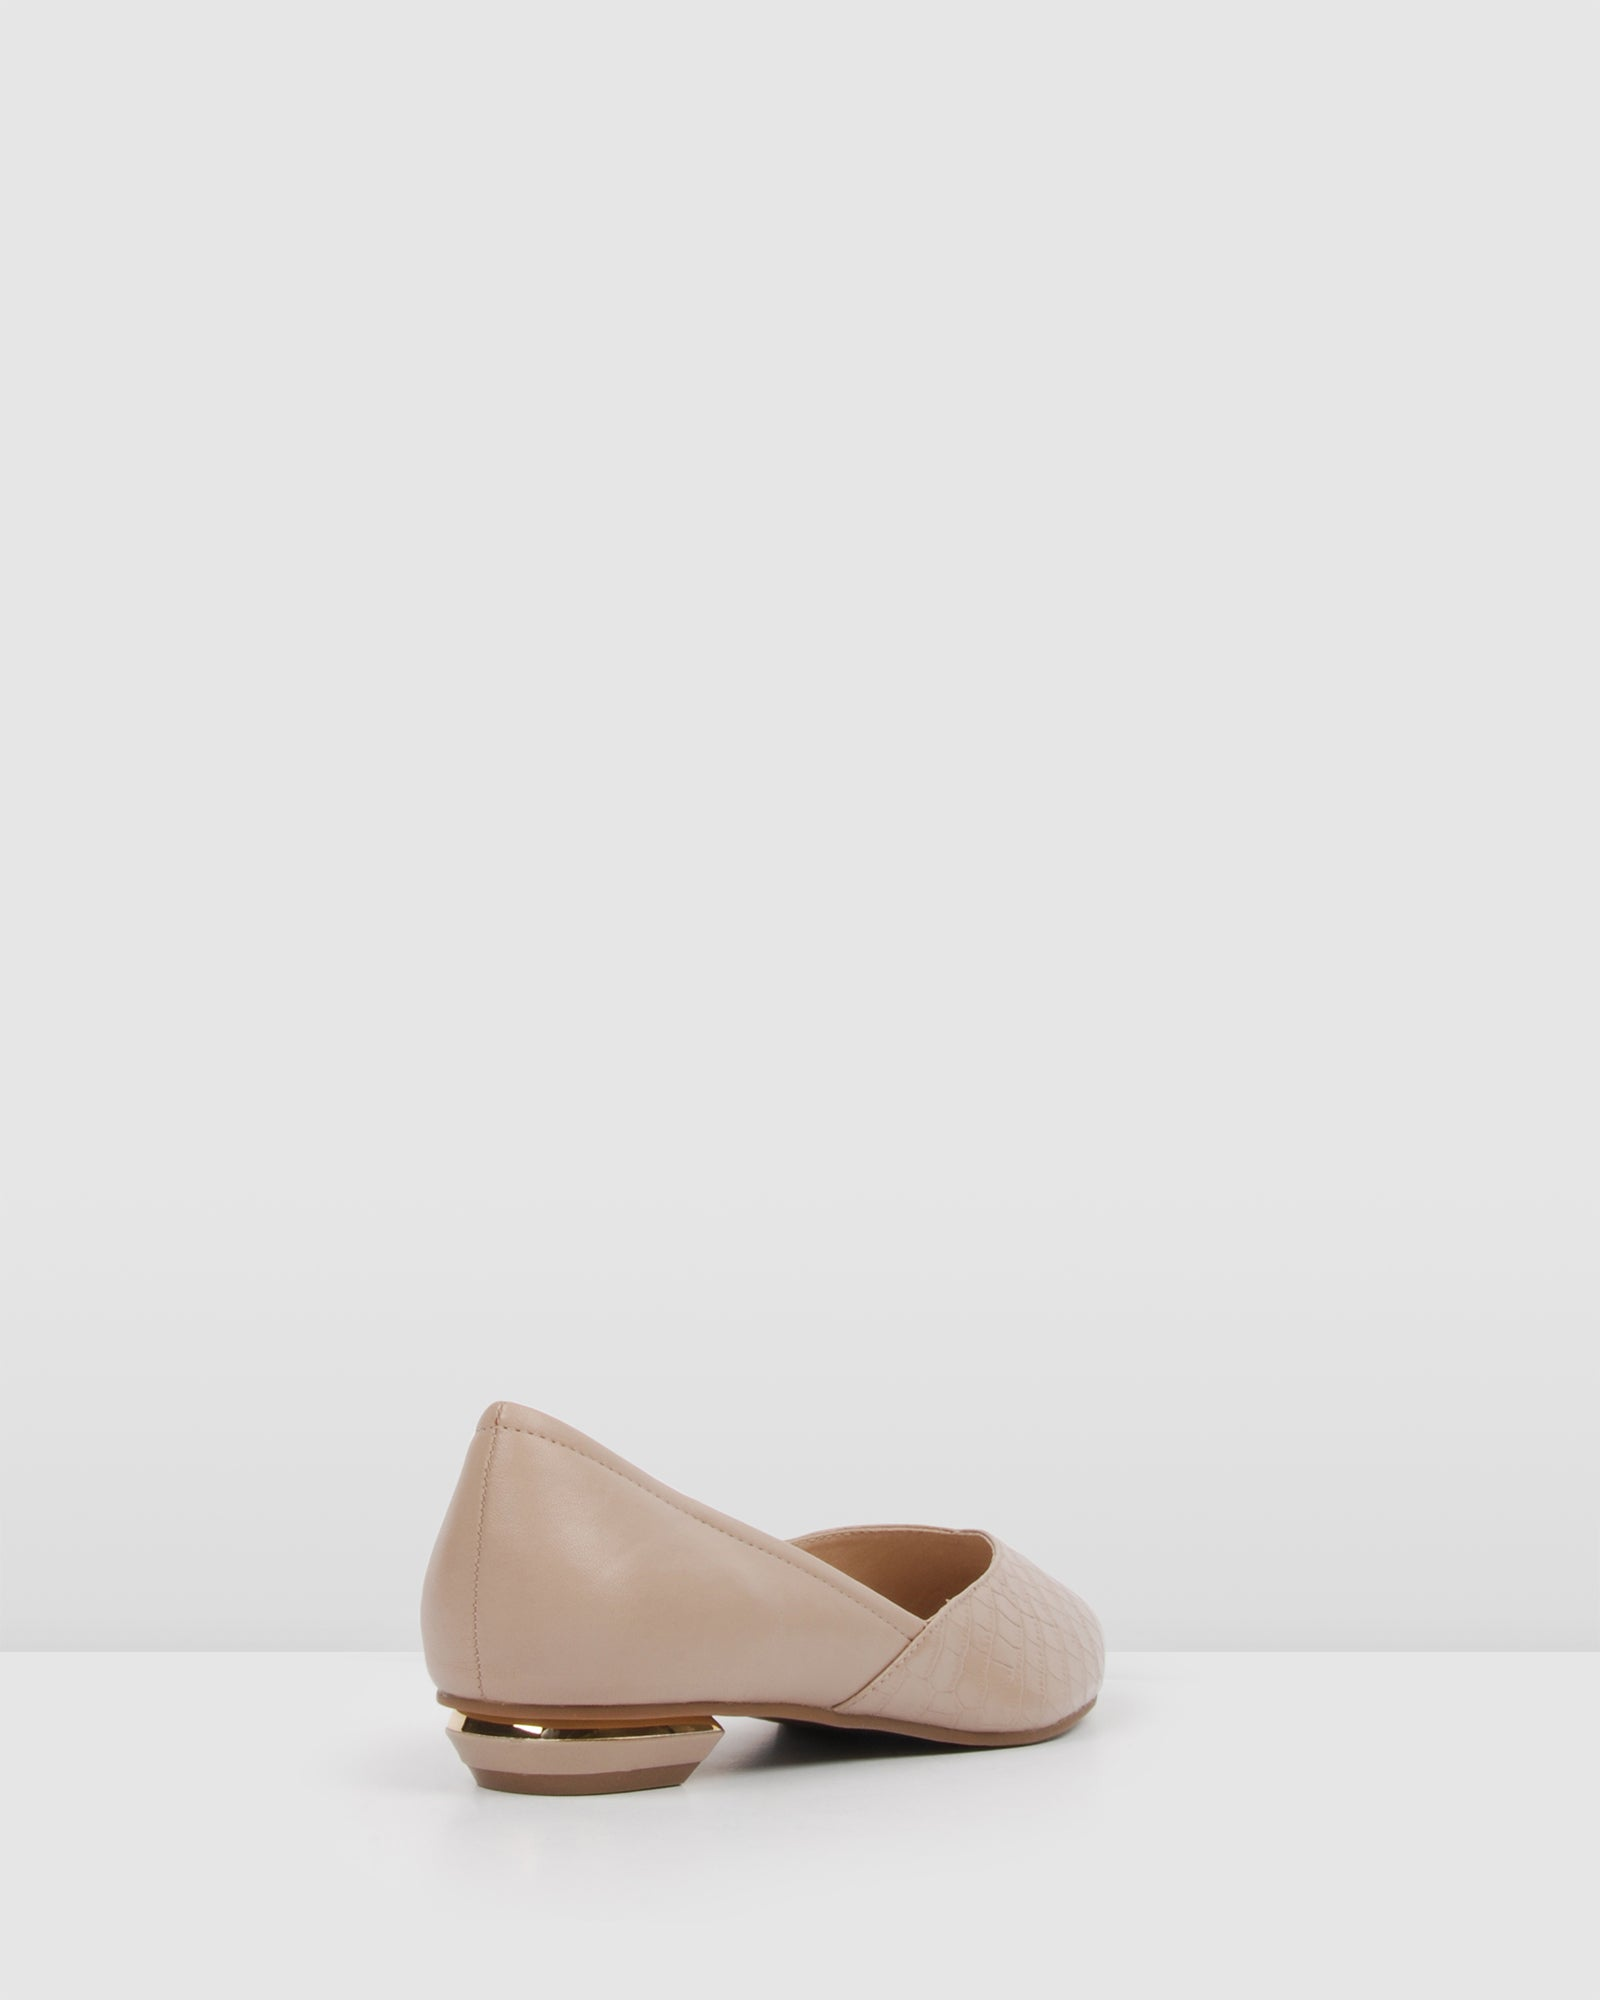 CARLISLE DRESS FLATS BLUSH LEATHER